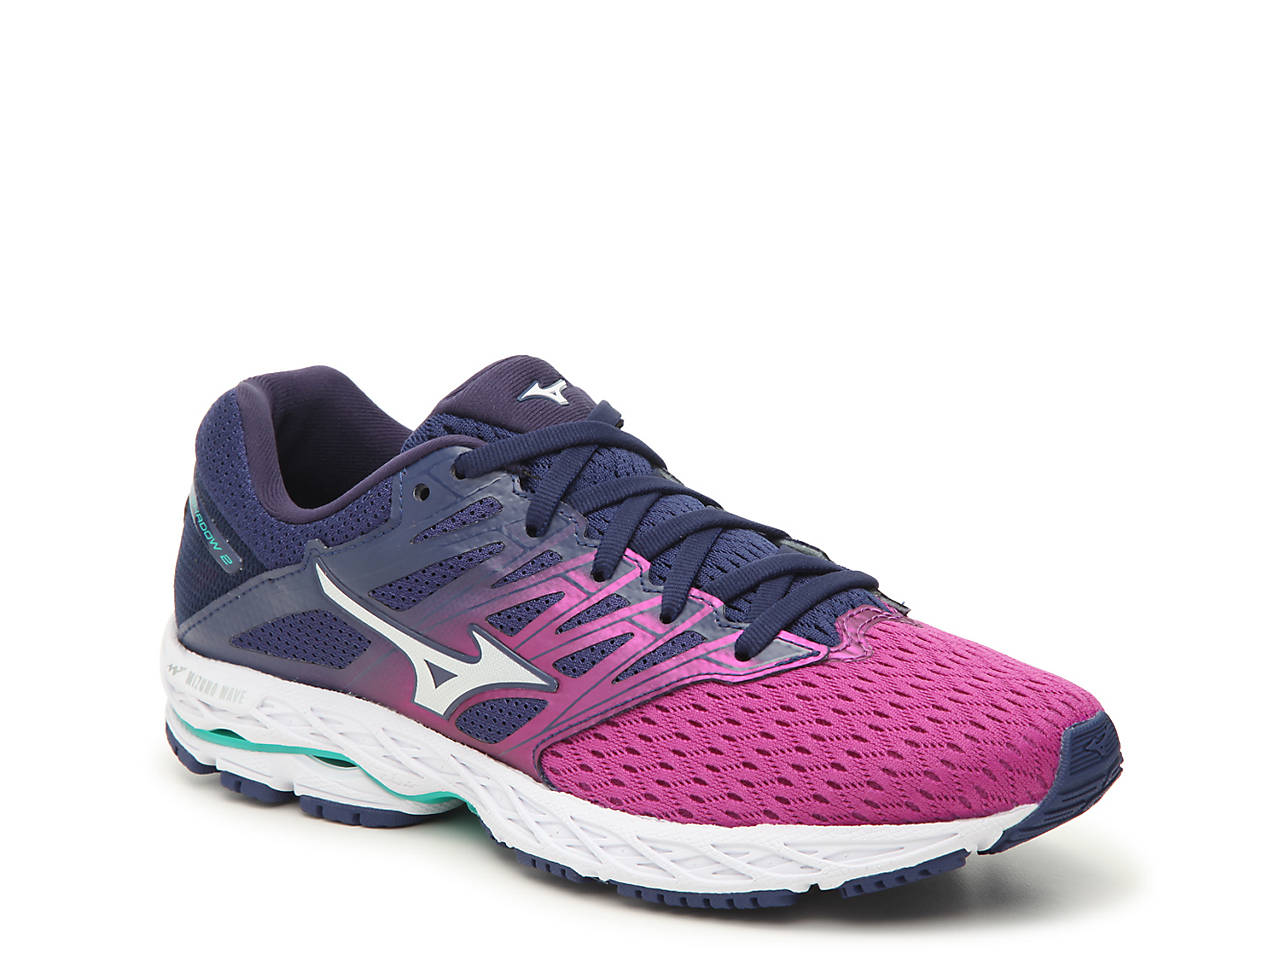 Mizuno Wave Shadow 2 Lightweight Running Shoe - Women s Women s ... 061567f76